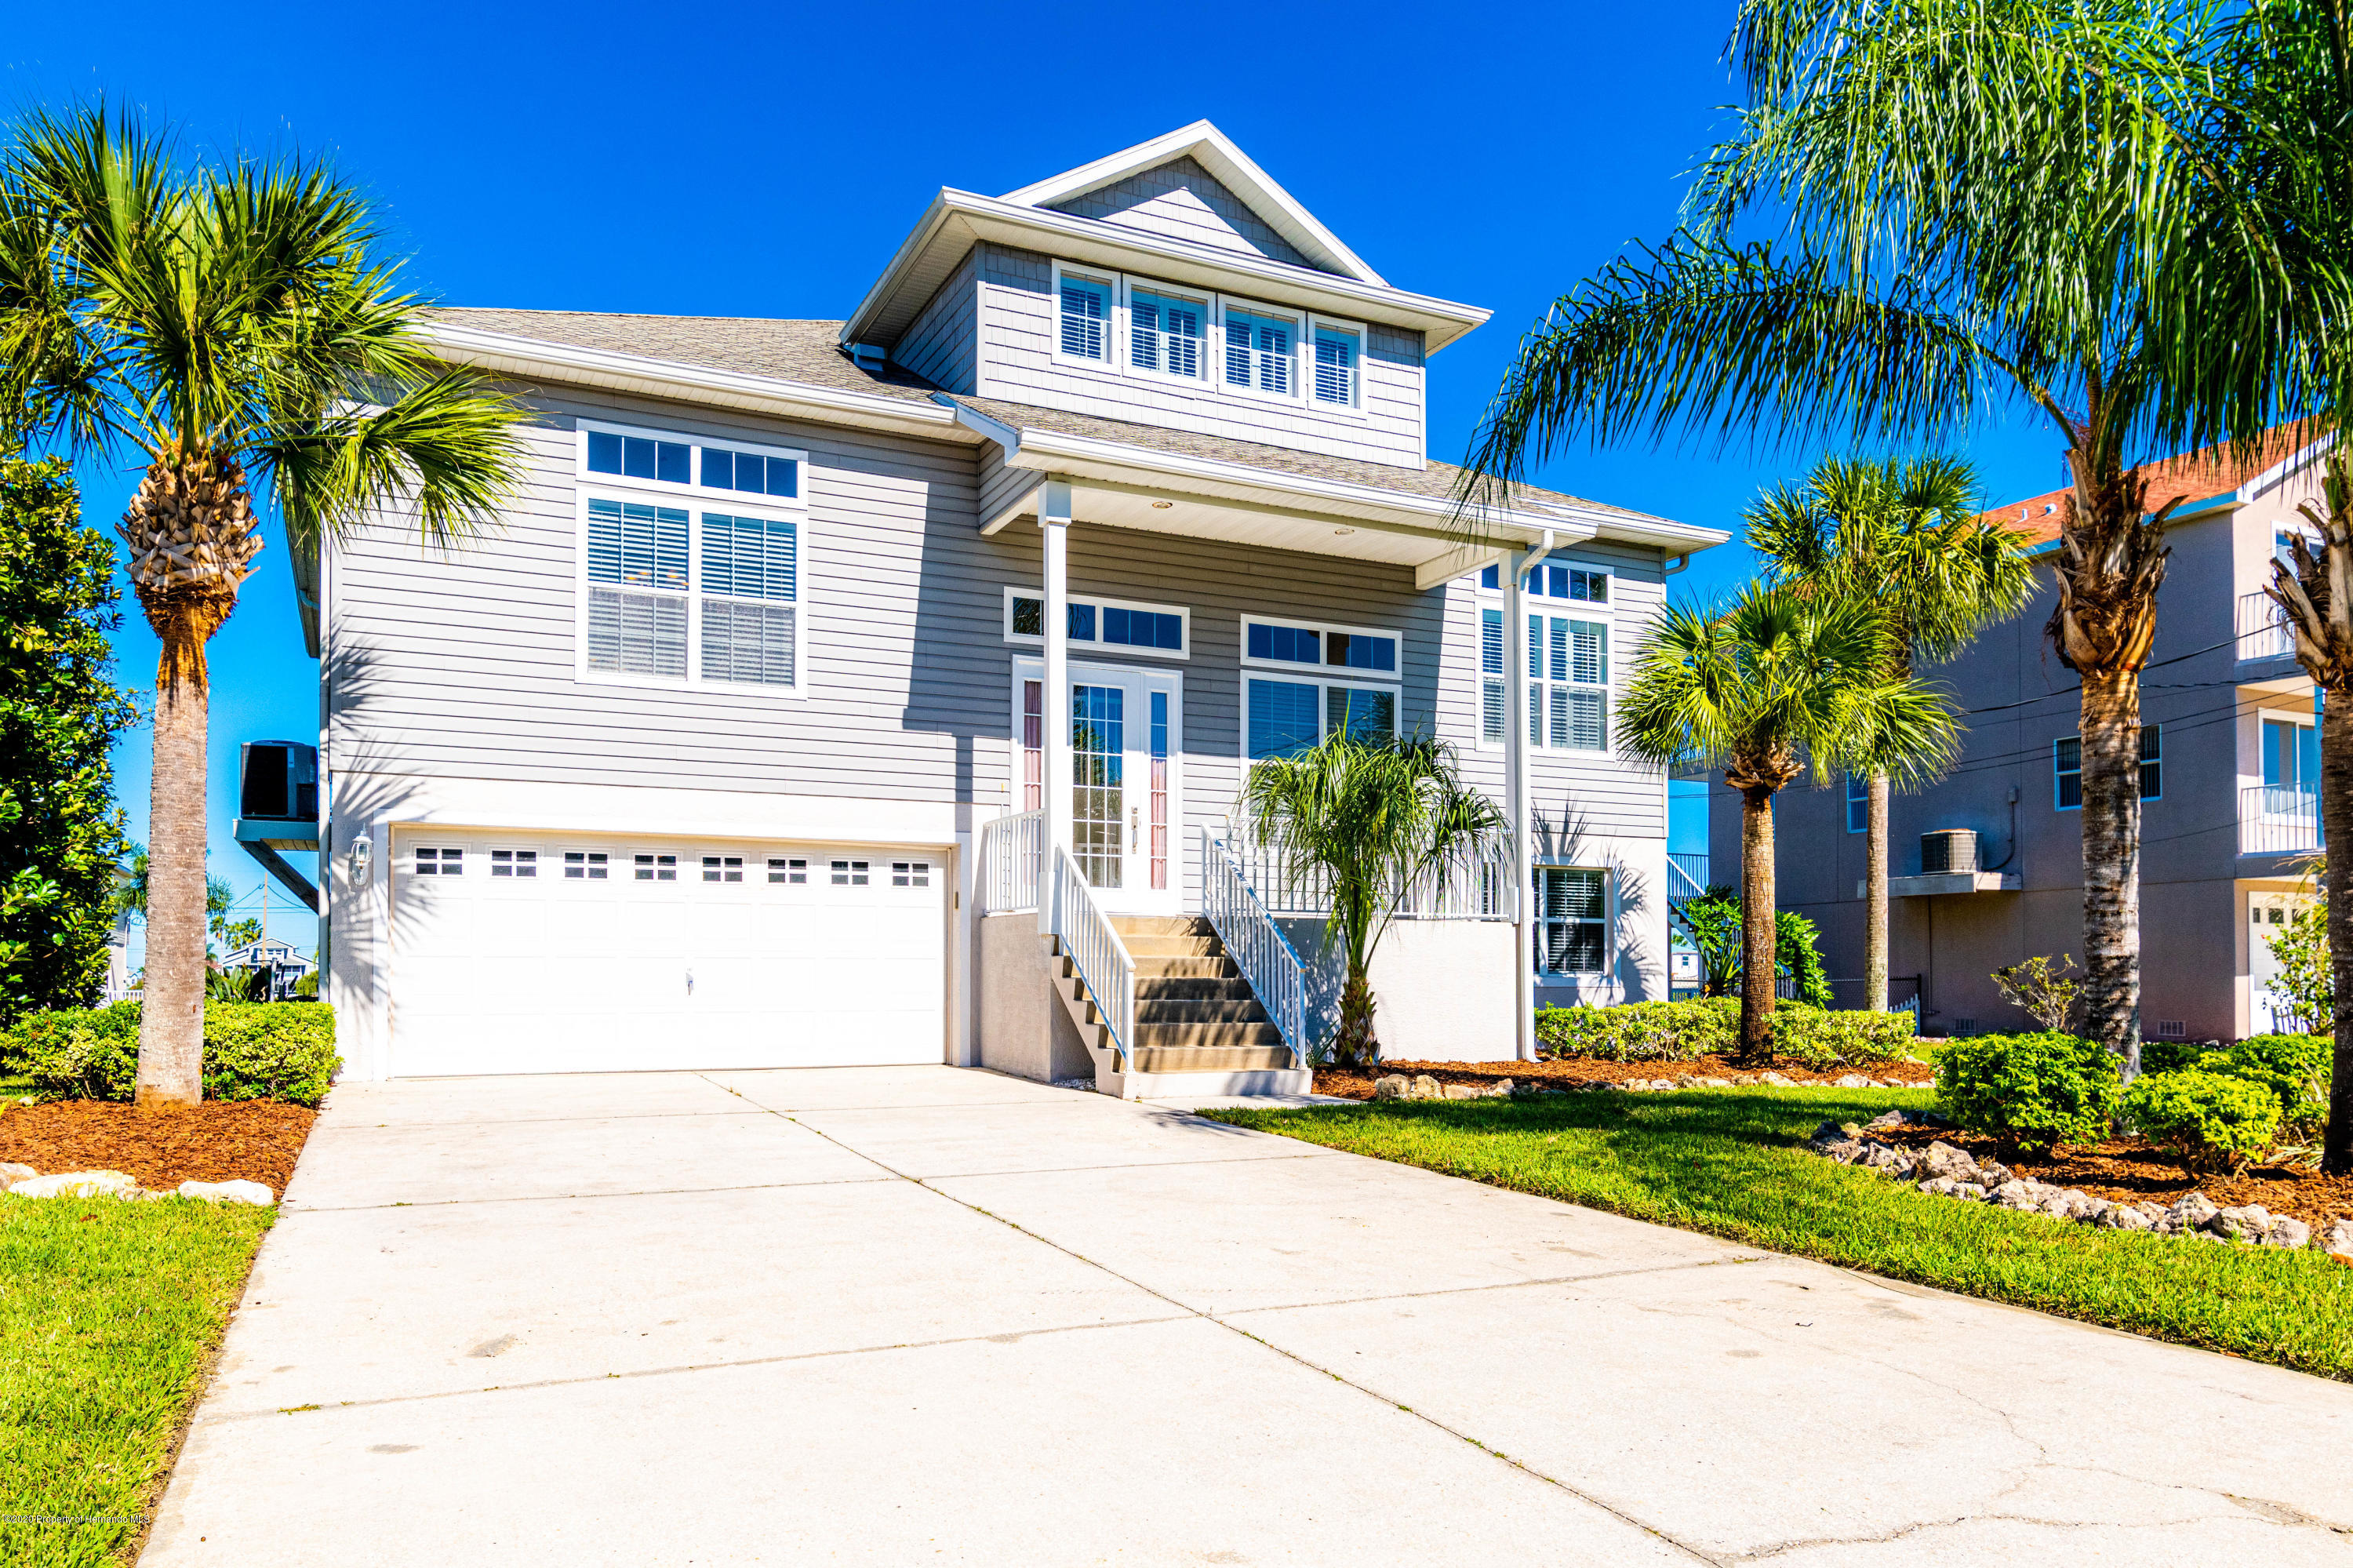 Image 2 For 3415 Palometa Drive